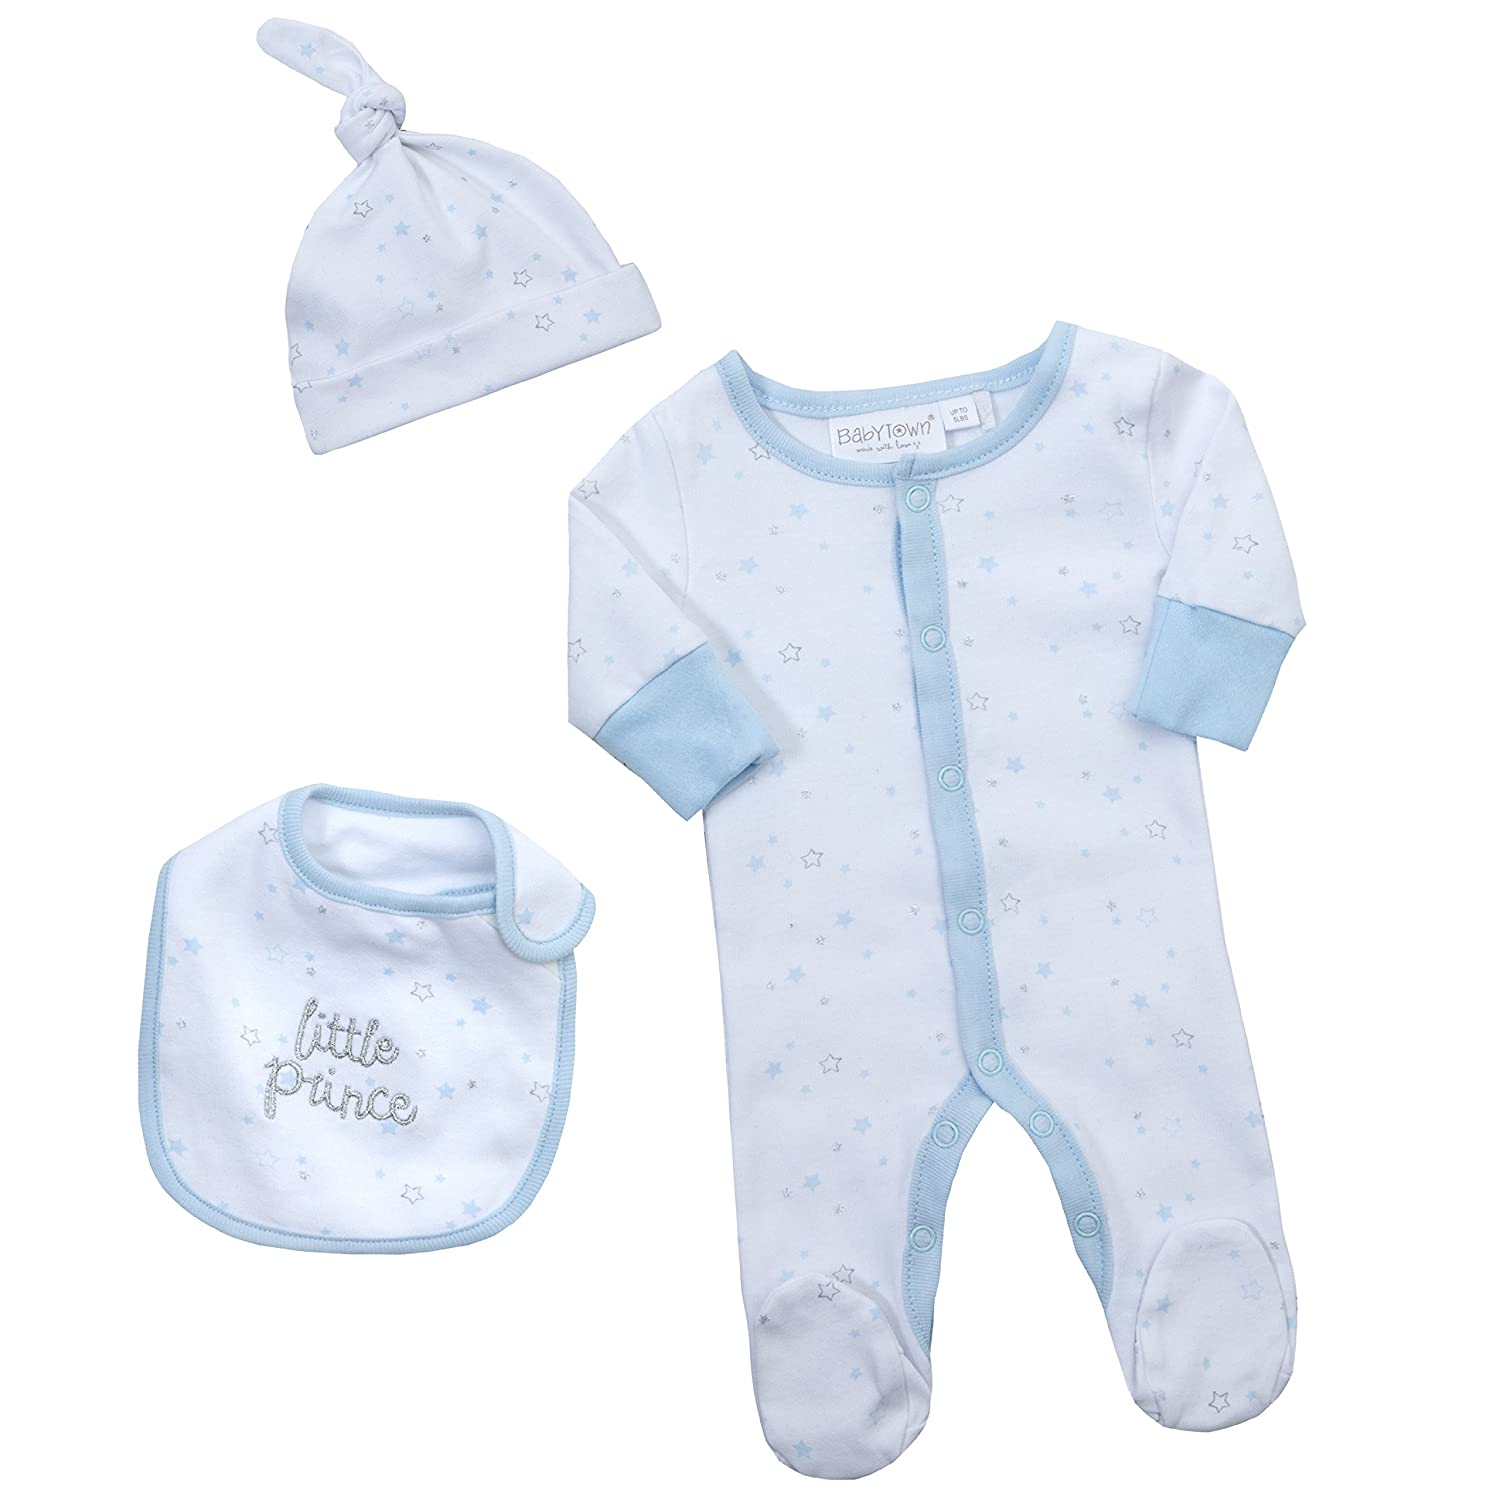 BABYTOWN Boys Prince Sleepsuit Set Including Bib and Hat. Premature Baby